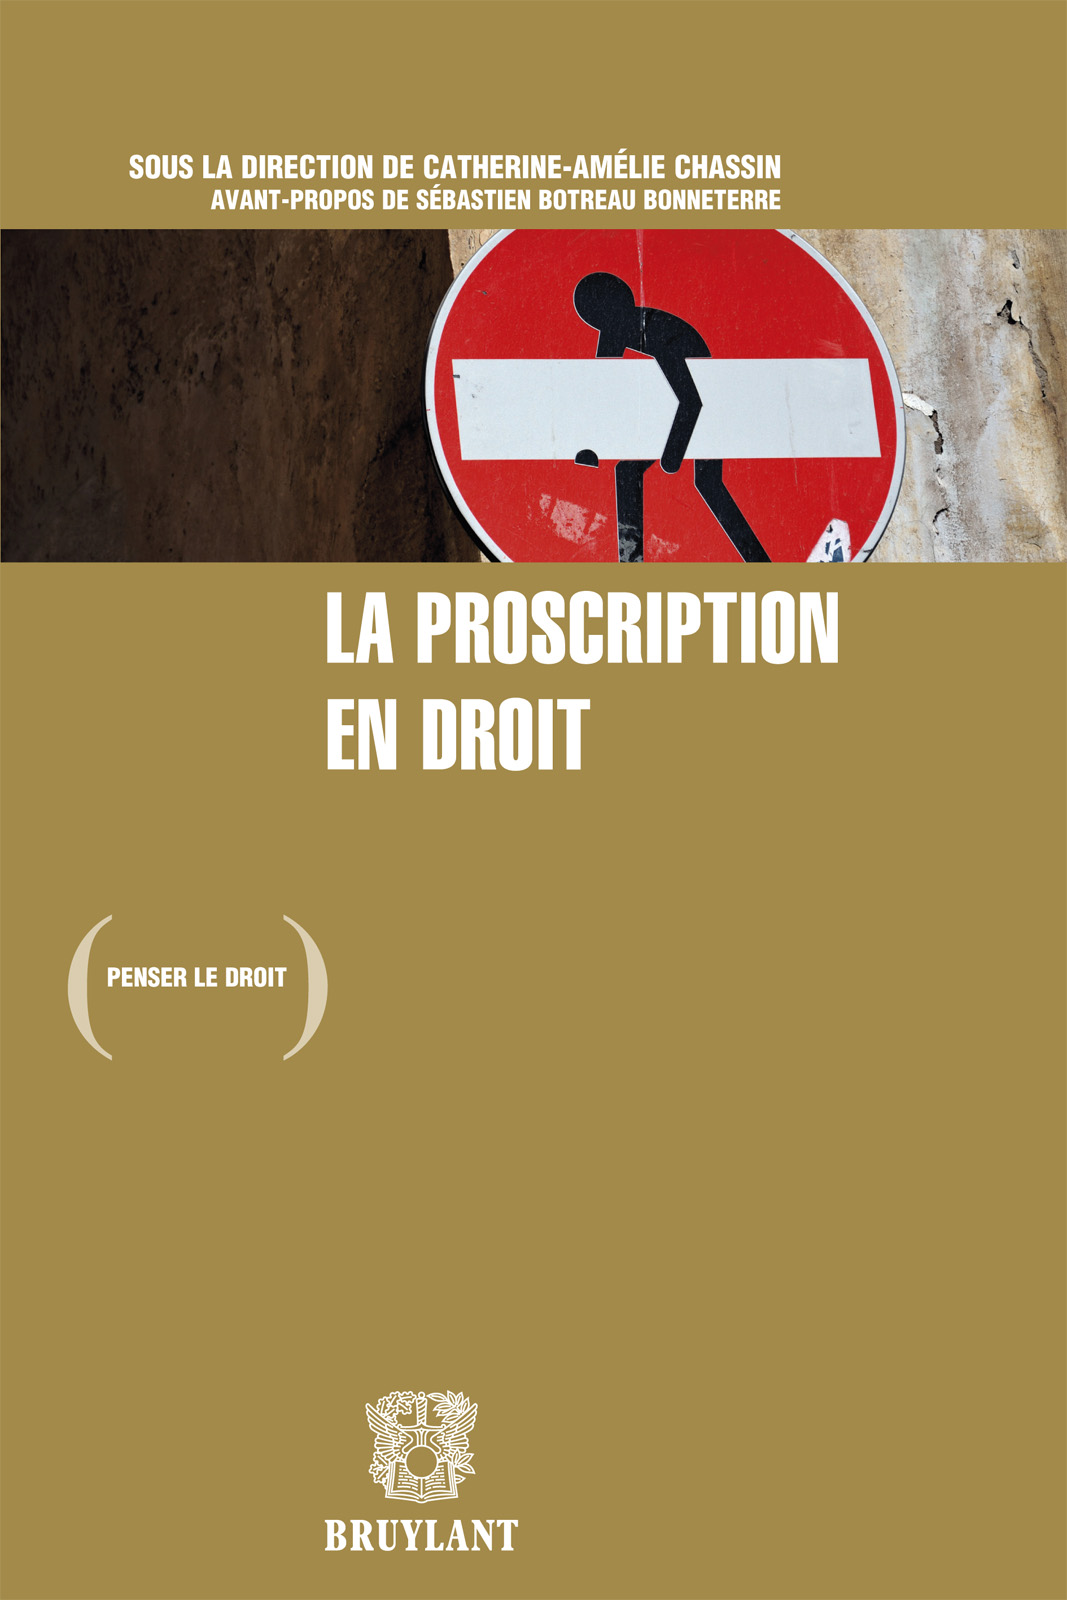 La proscription en droit